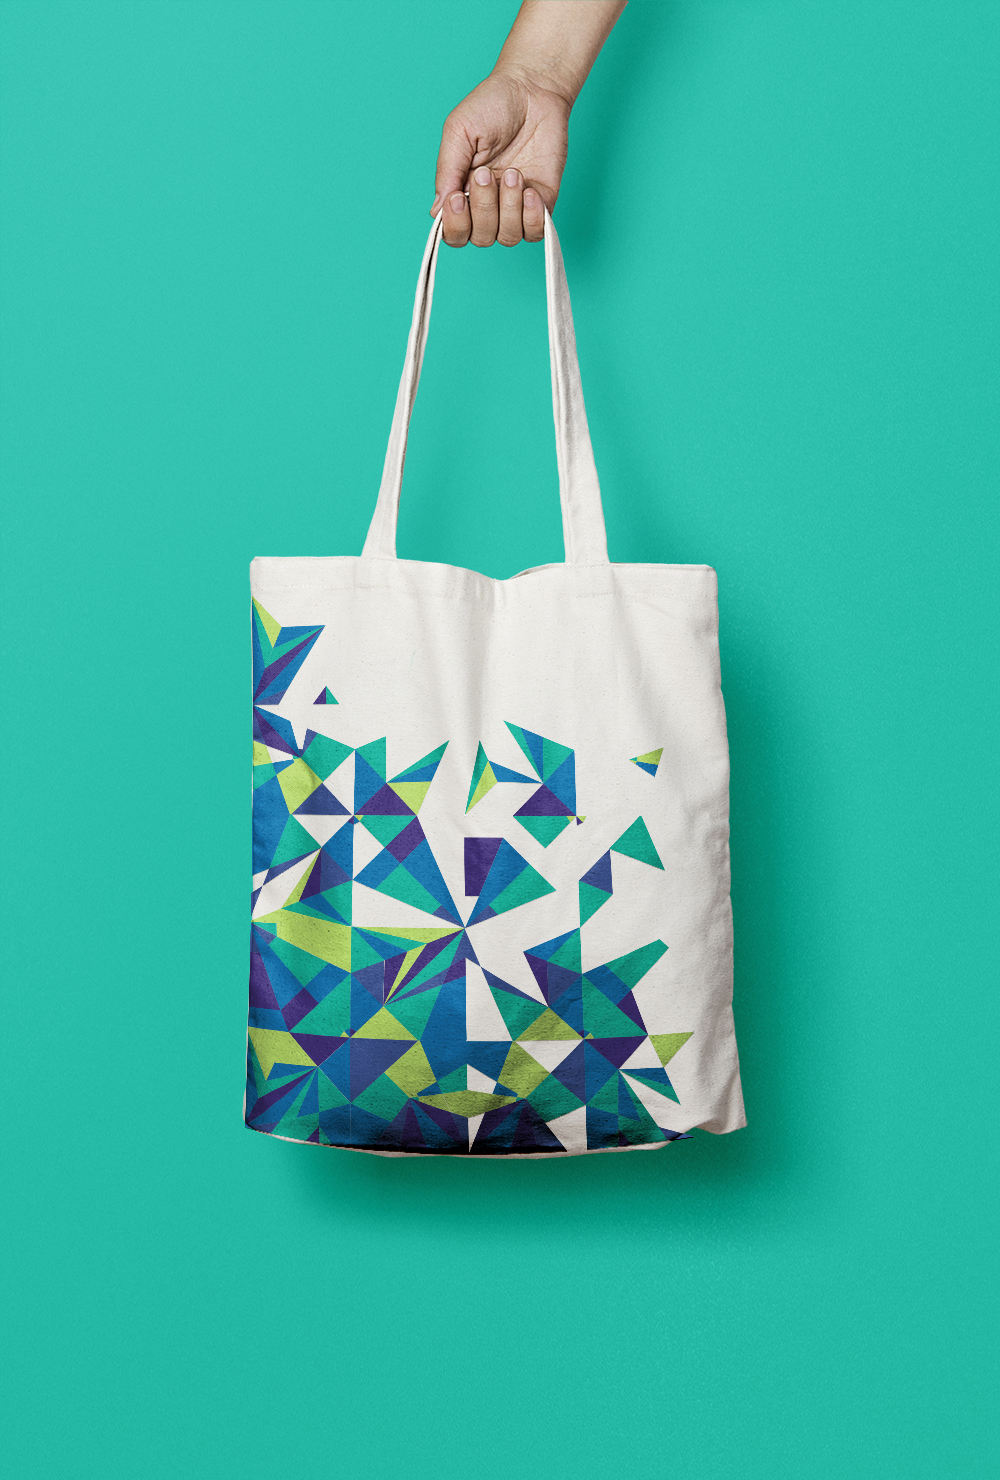 Peacock deconstructed origami tote bag